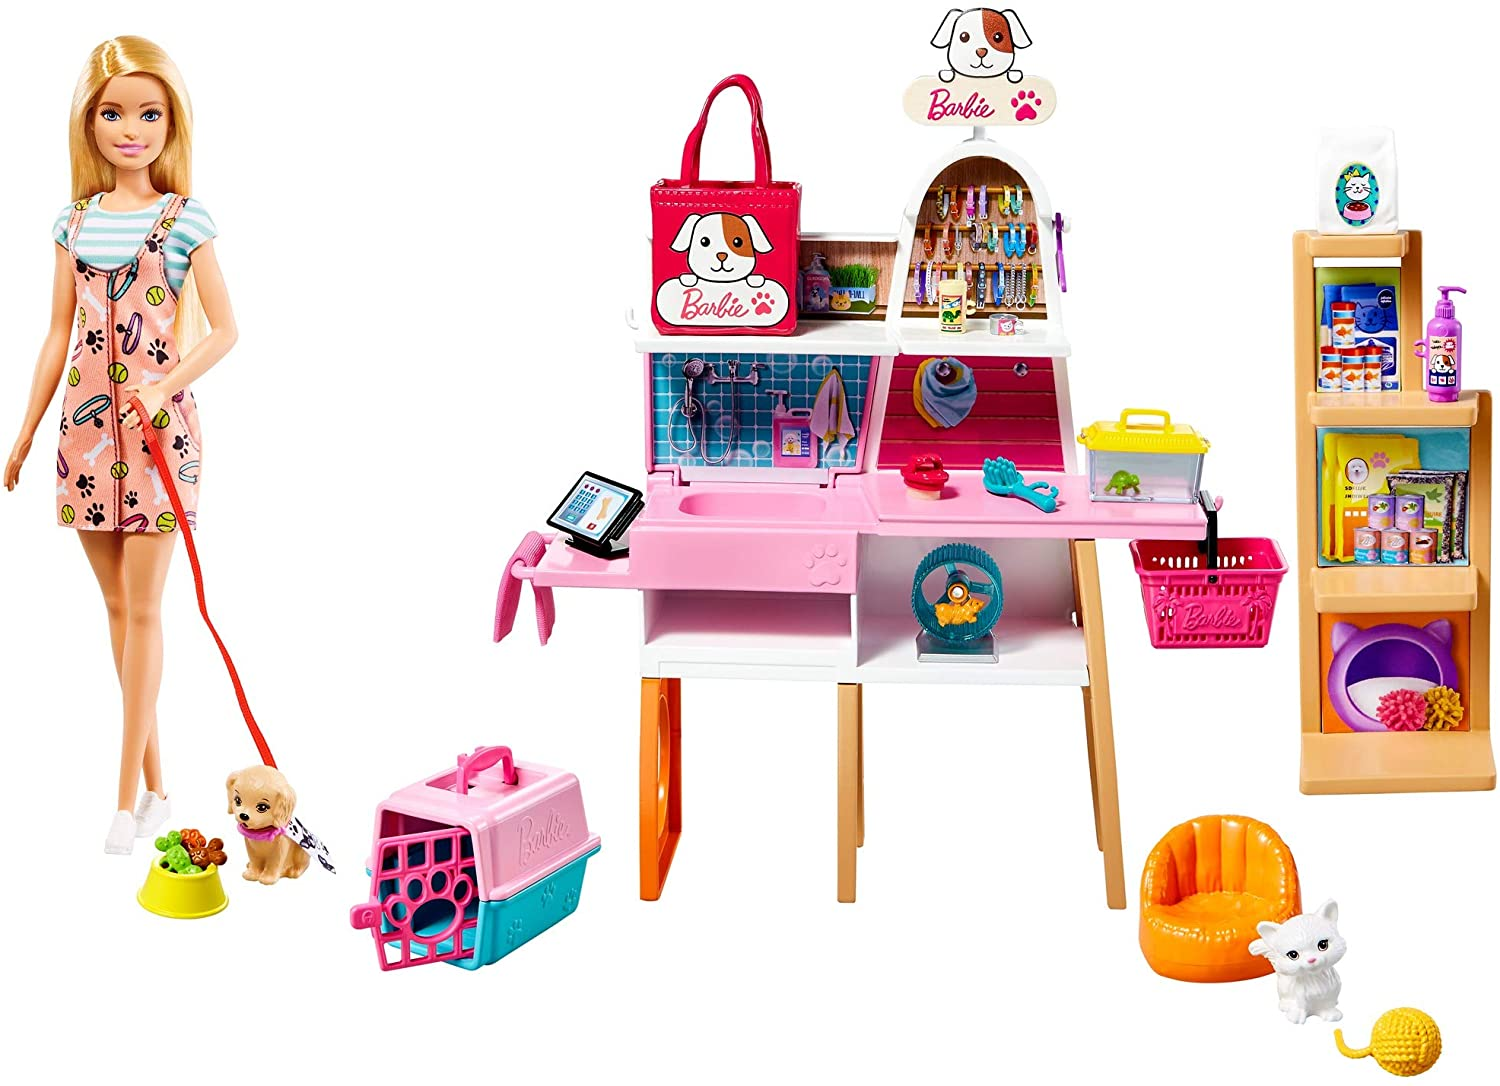 Barbie - Pet Supply Store Doll and Playset (GRG90)